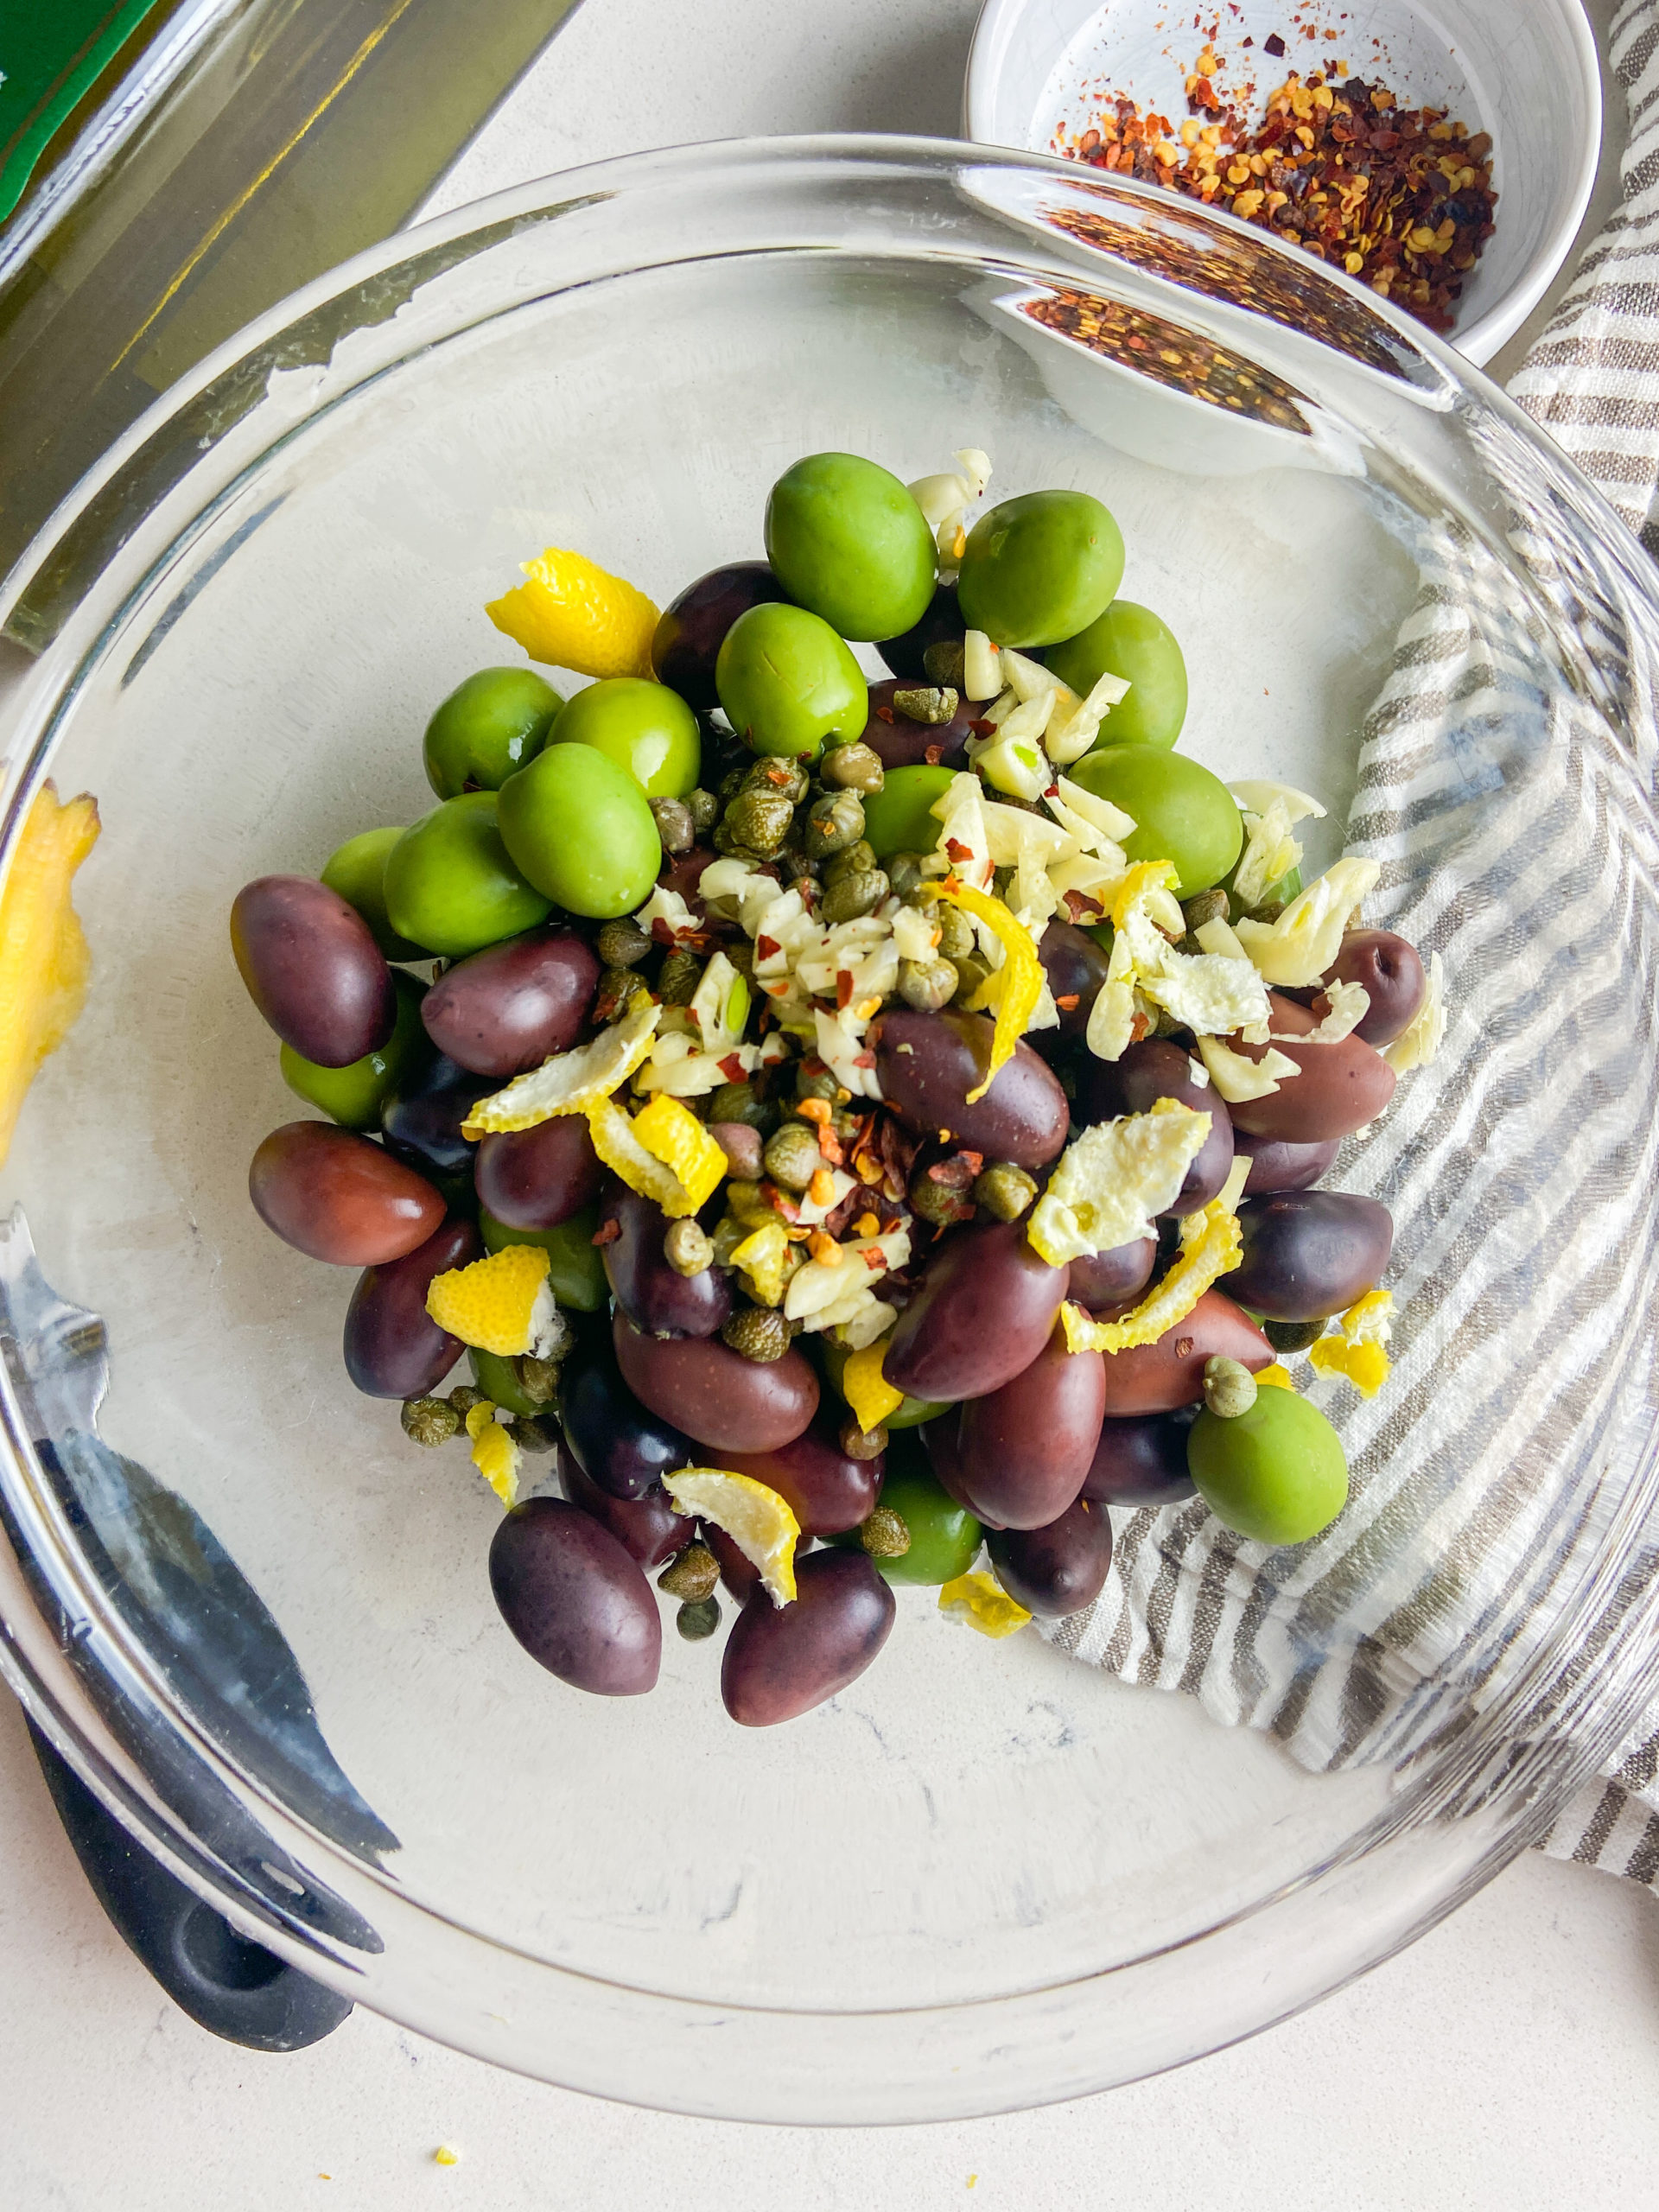 All ingredients for marinated olives in a clear bowl.